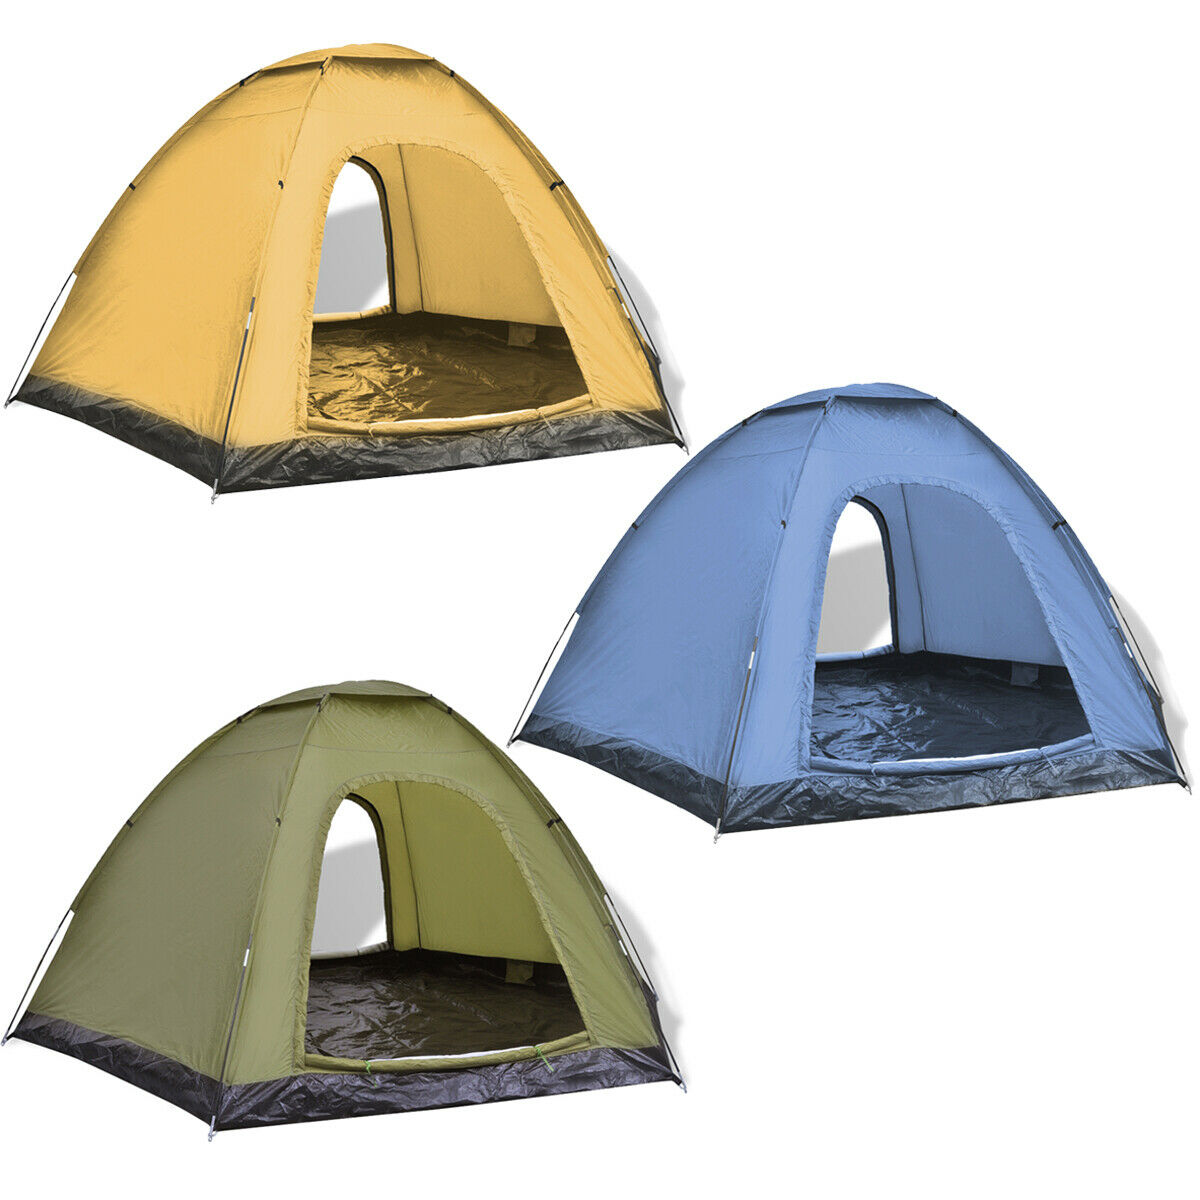 6 Person Man Family Camping Tent Outdoor Hiking Trip Sun Shelter Fishing Room